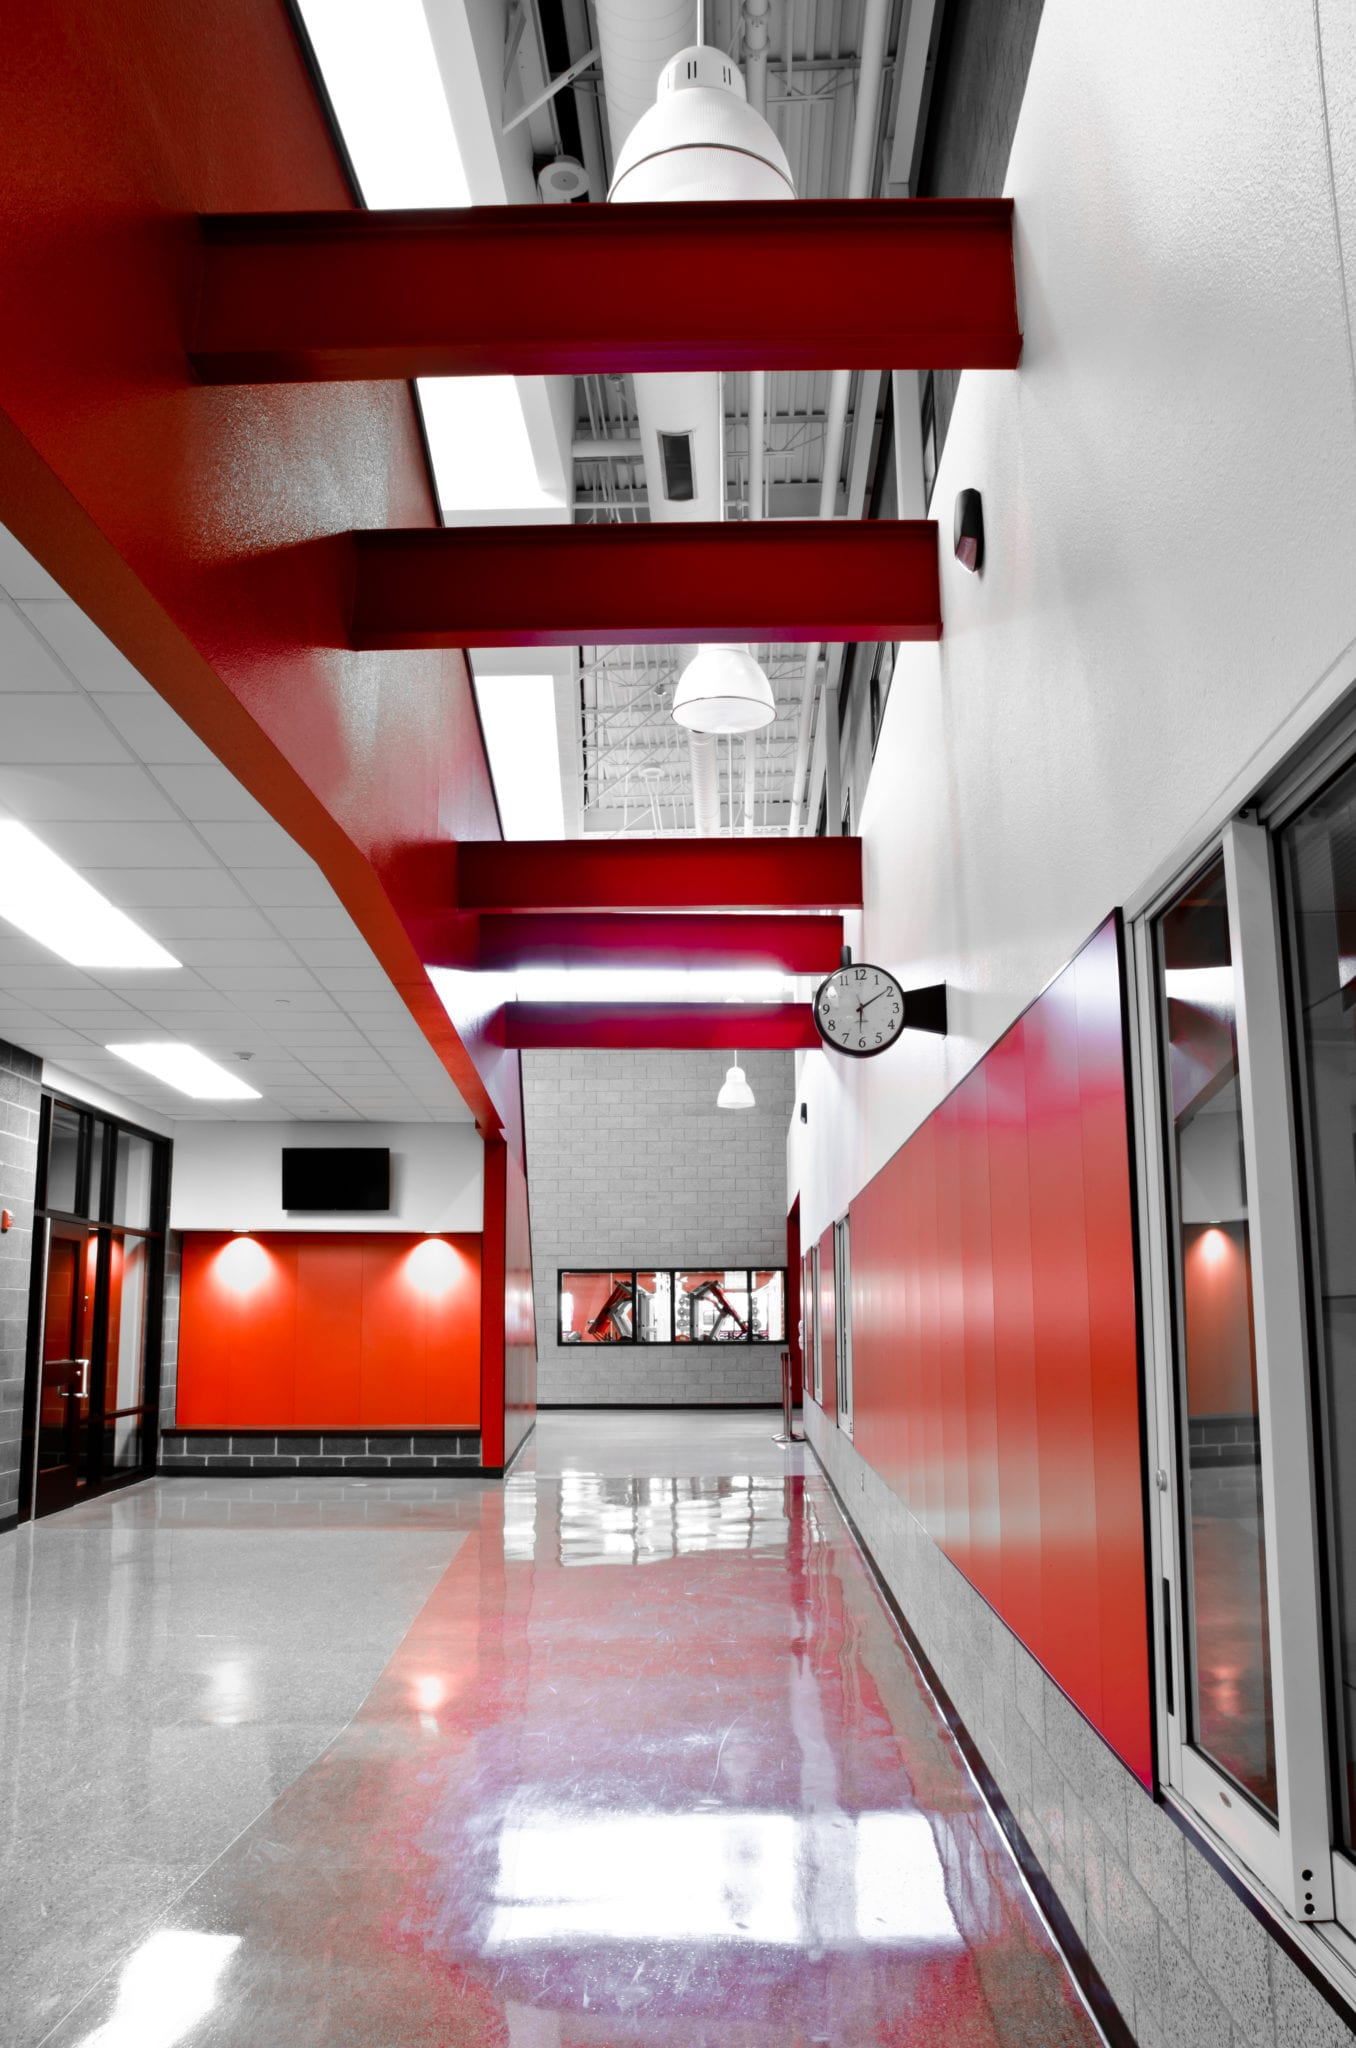 South Belton Middle School - Baird Williams Construction